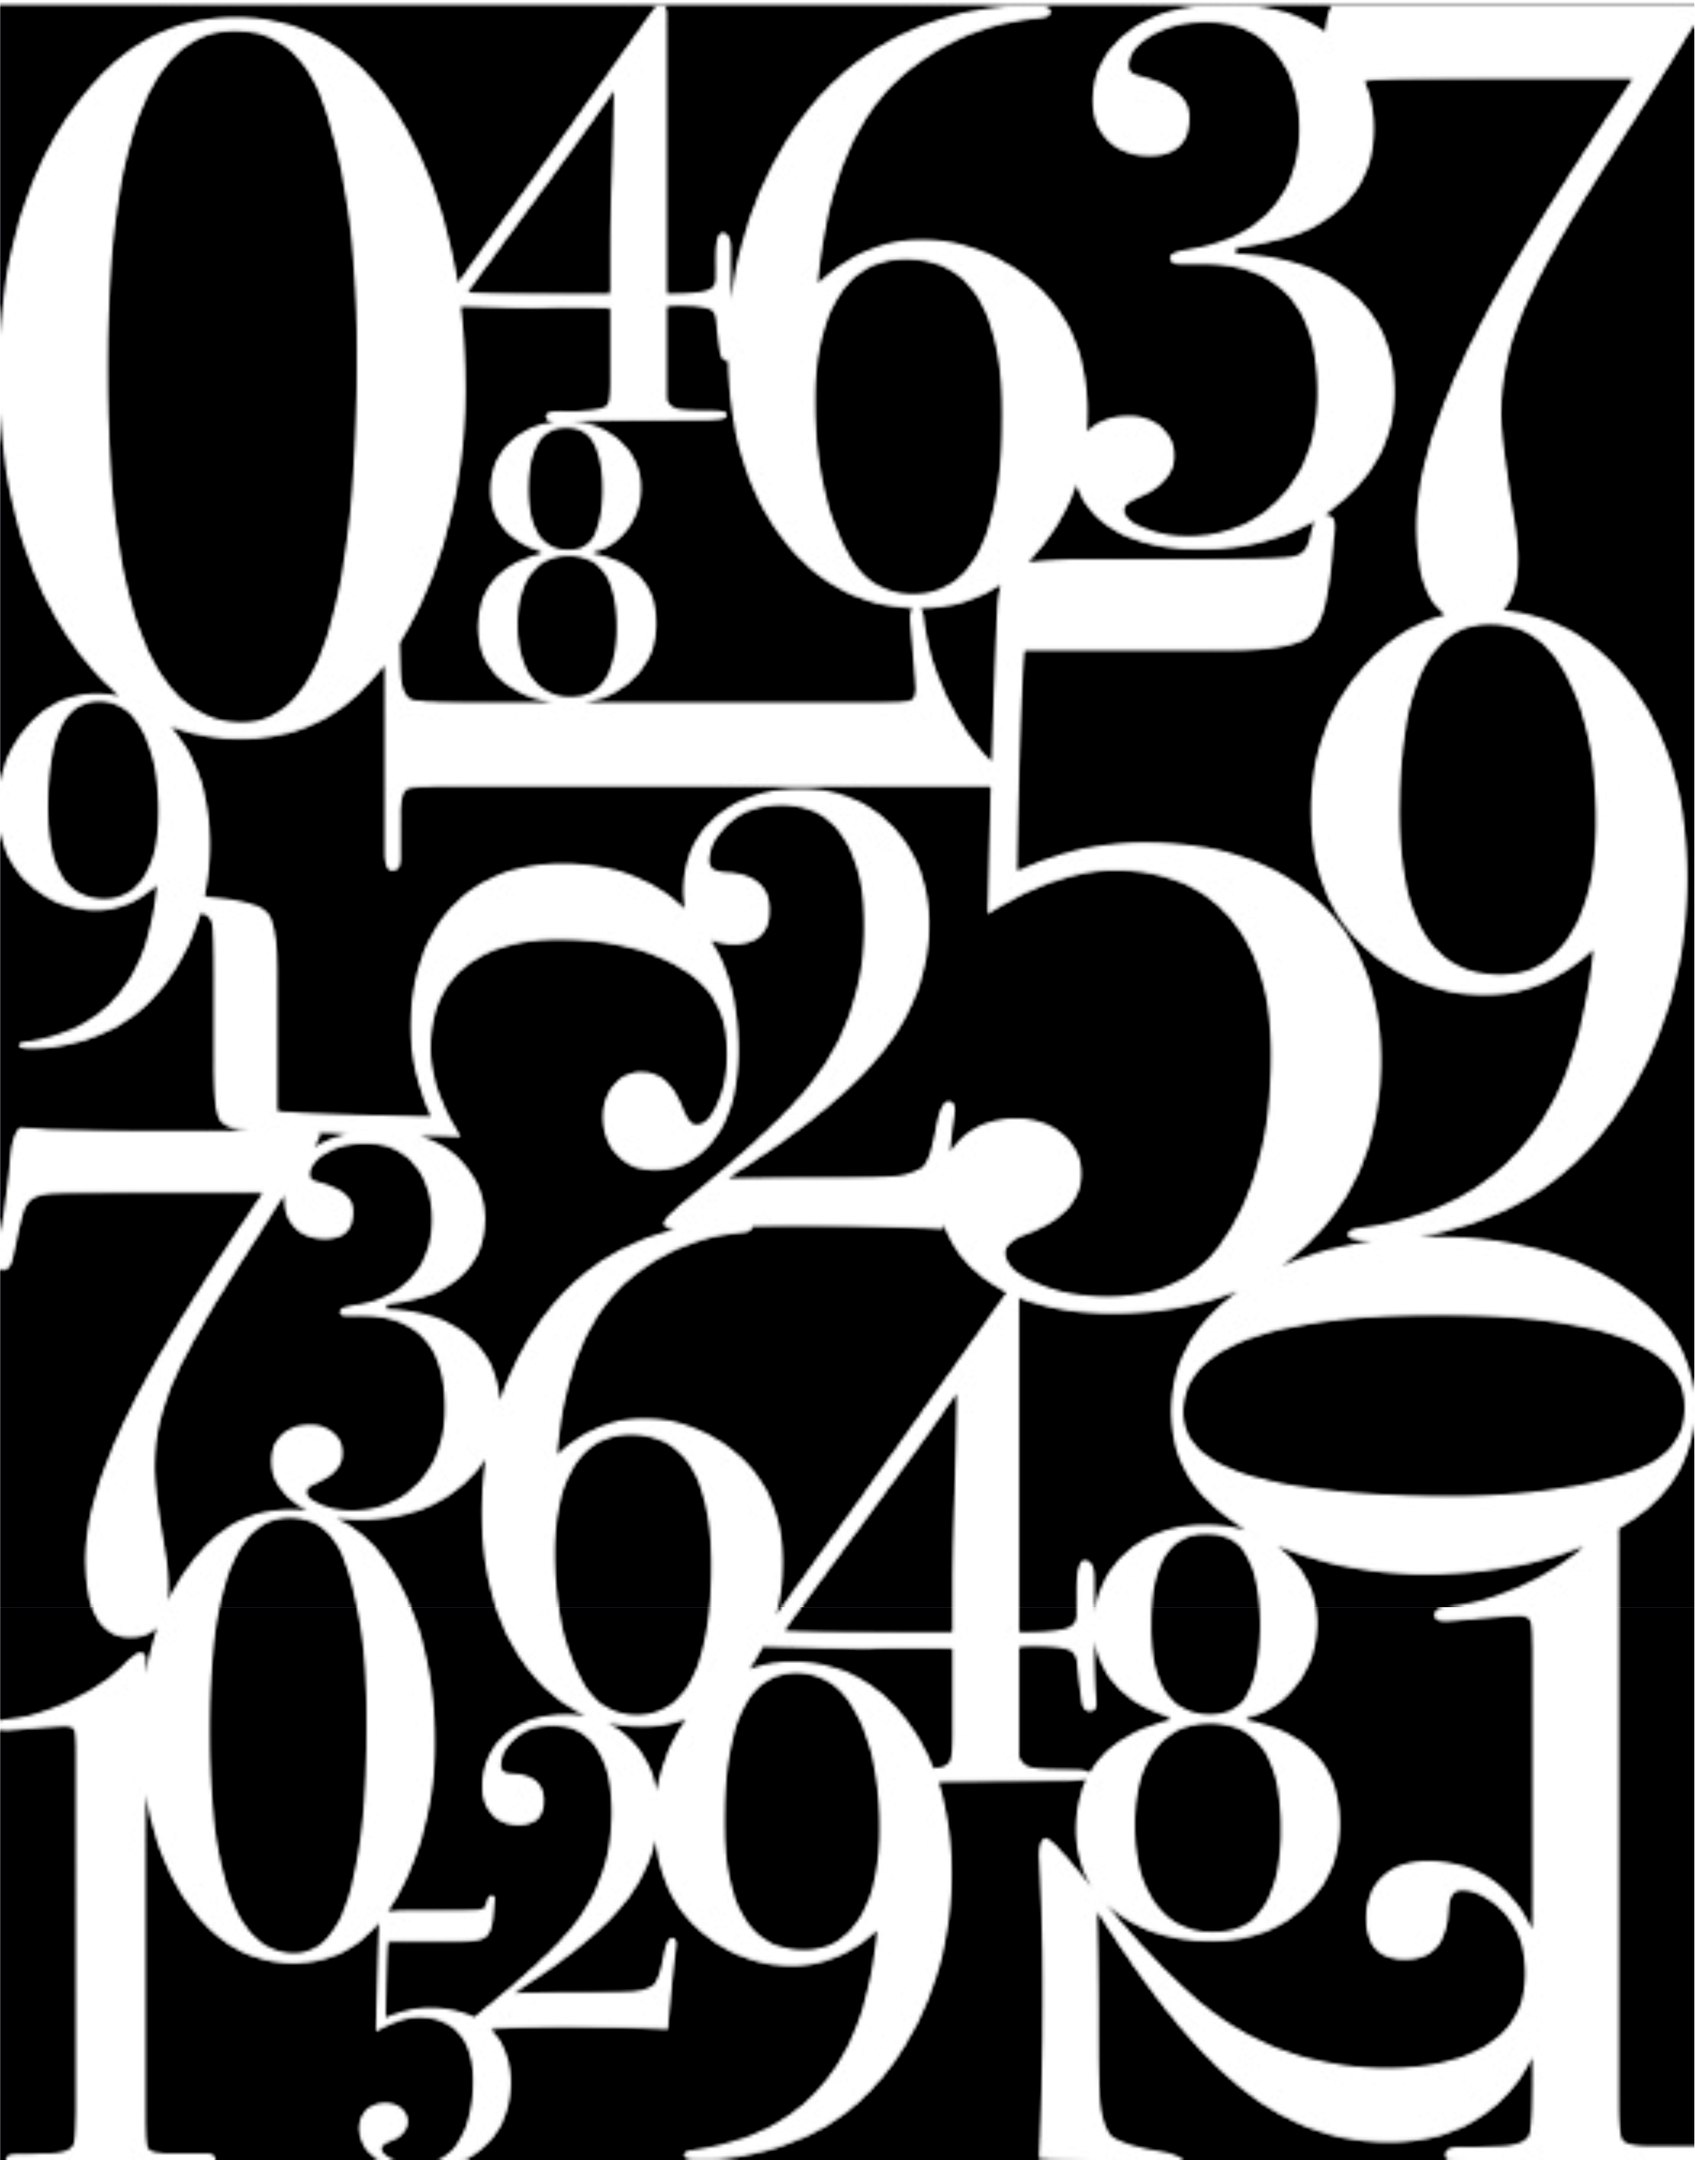 Abstract Number Wall Art Free Vector